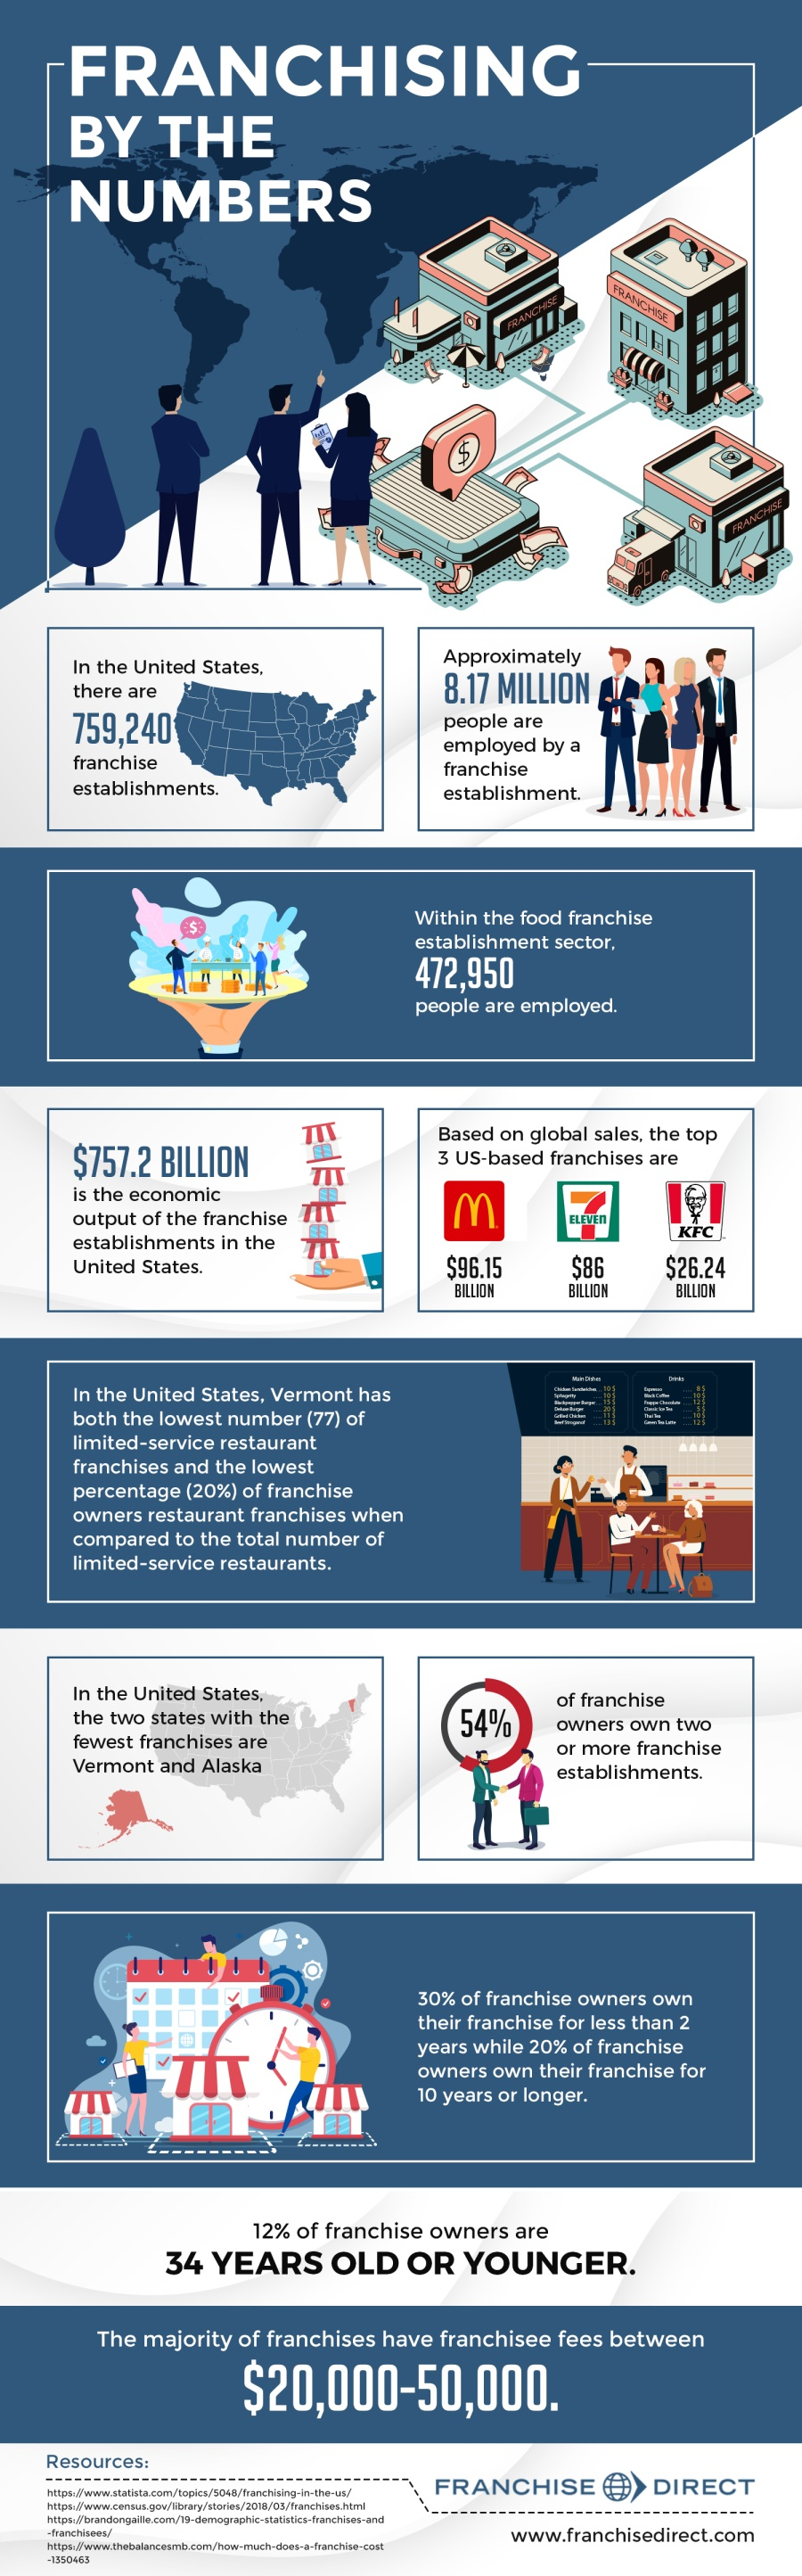 Franchising by the Numbers